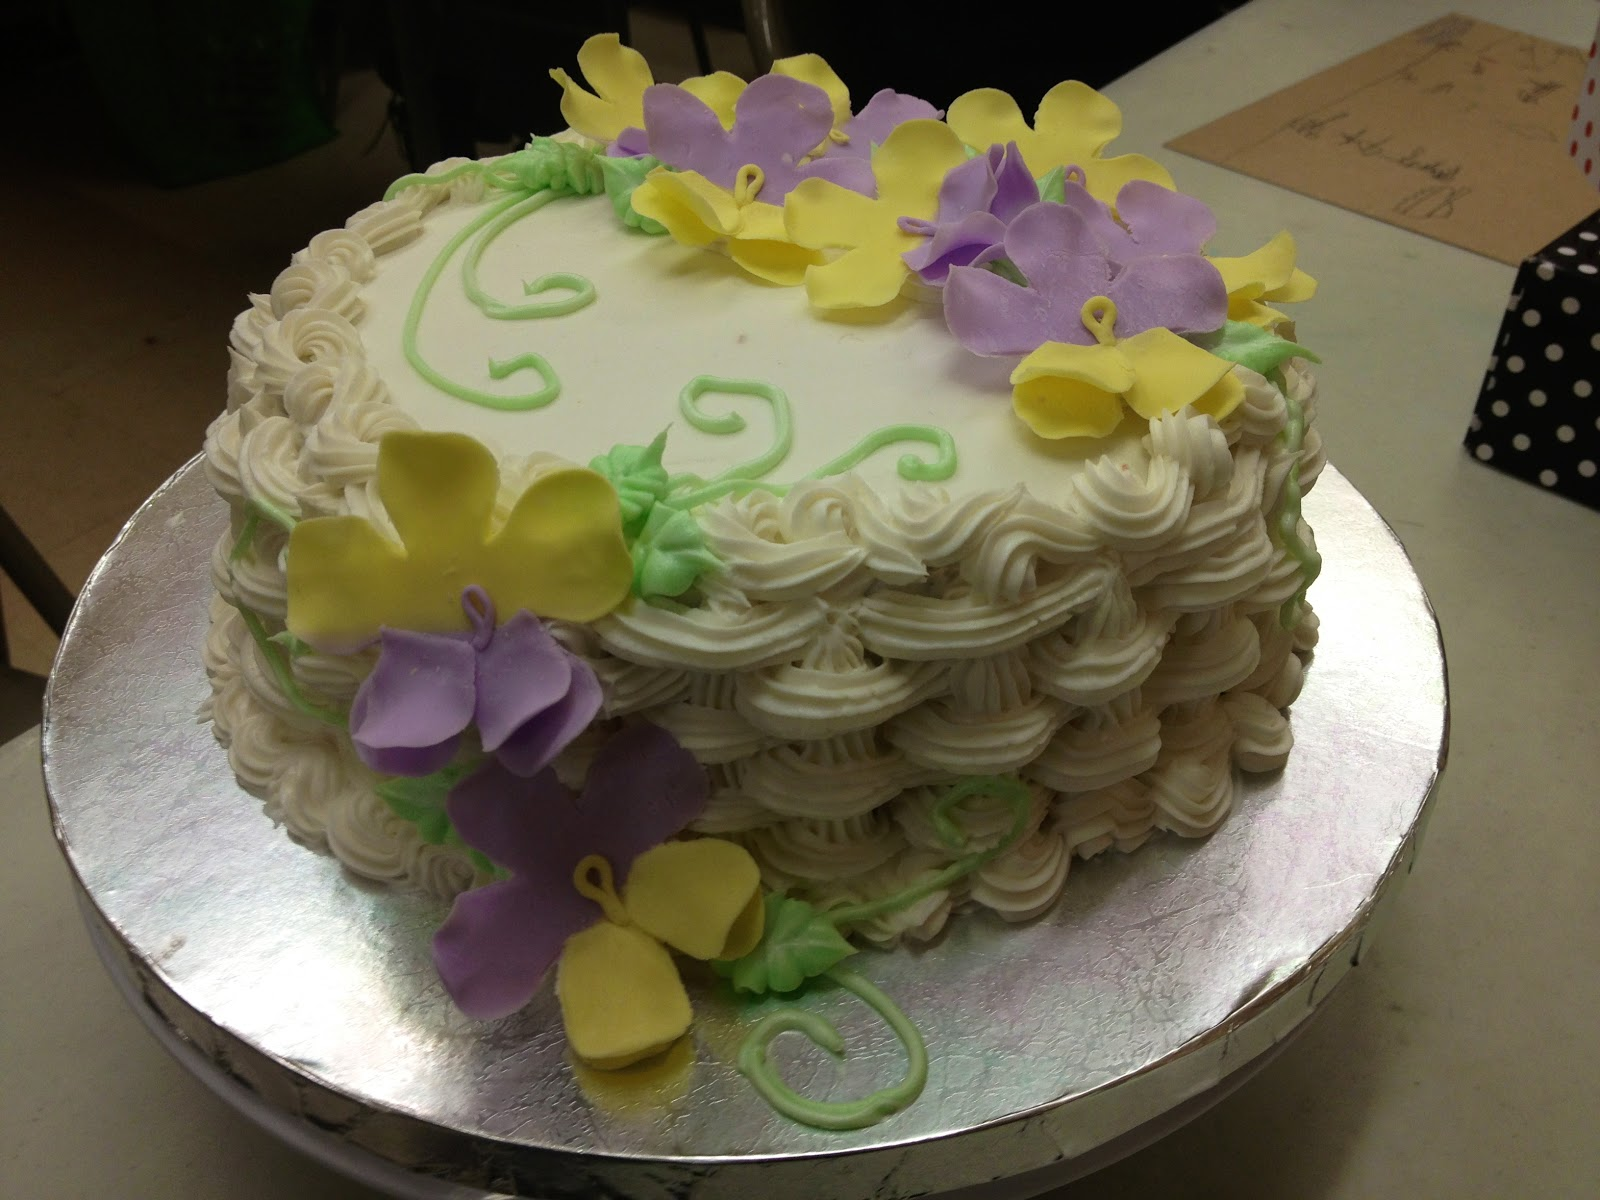 Jesnescakes Basket Weave Cake With Flowers And Vine Designs